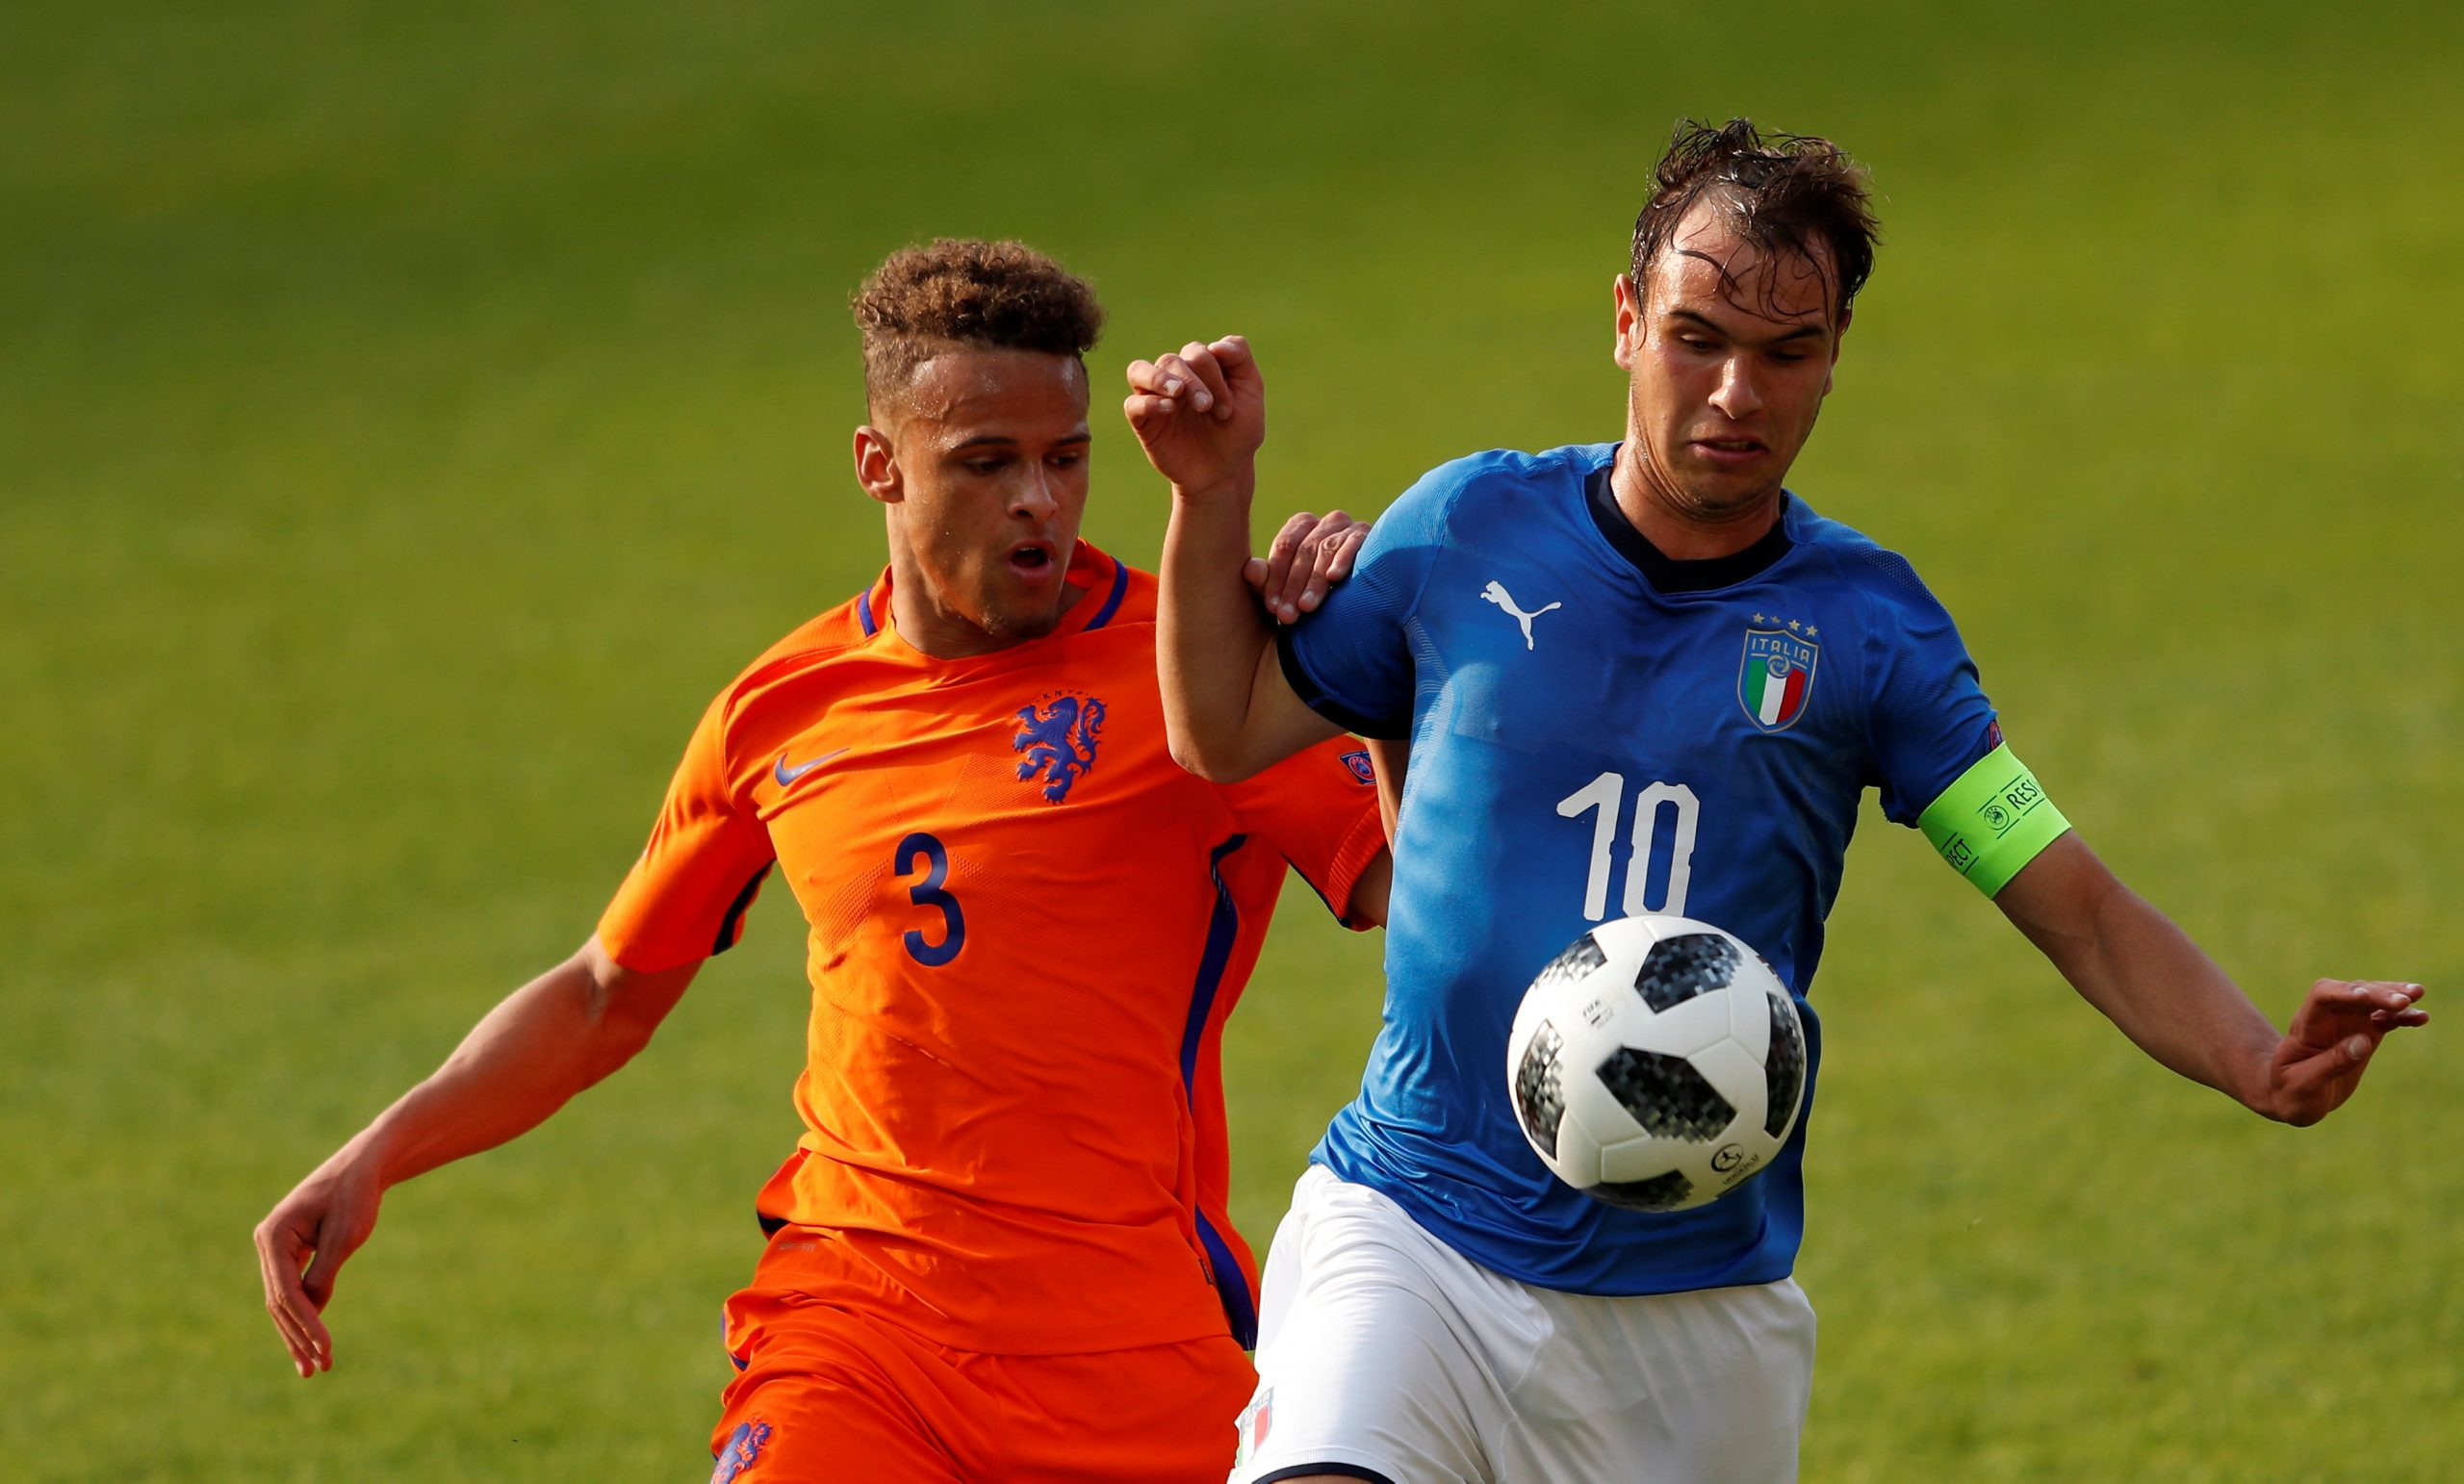 Italy v croatia betting previews online sports betting reviews